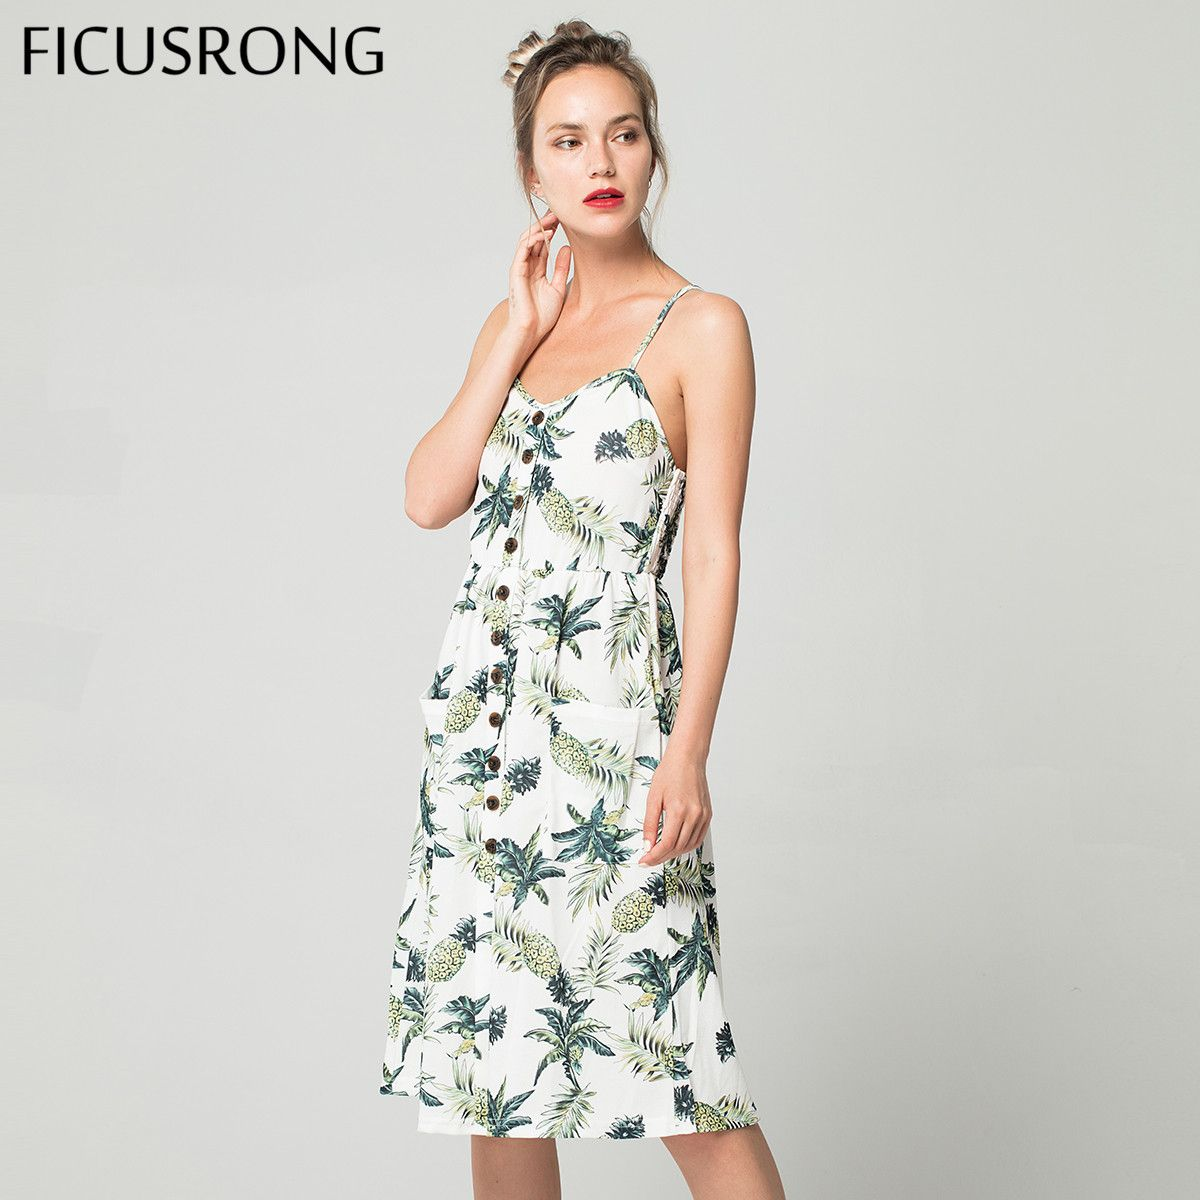 2019 Summer Women Button Decorated Print Dress Off-shoulder Party Beach Sundress Boho Spaghetti Long Dresses Plus Size FICUSRONG